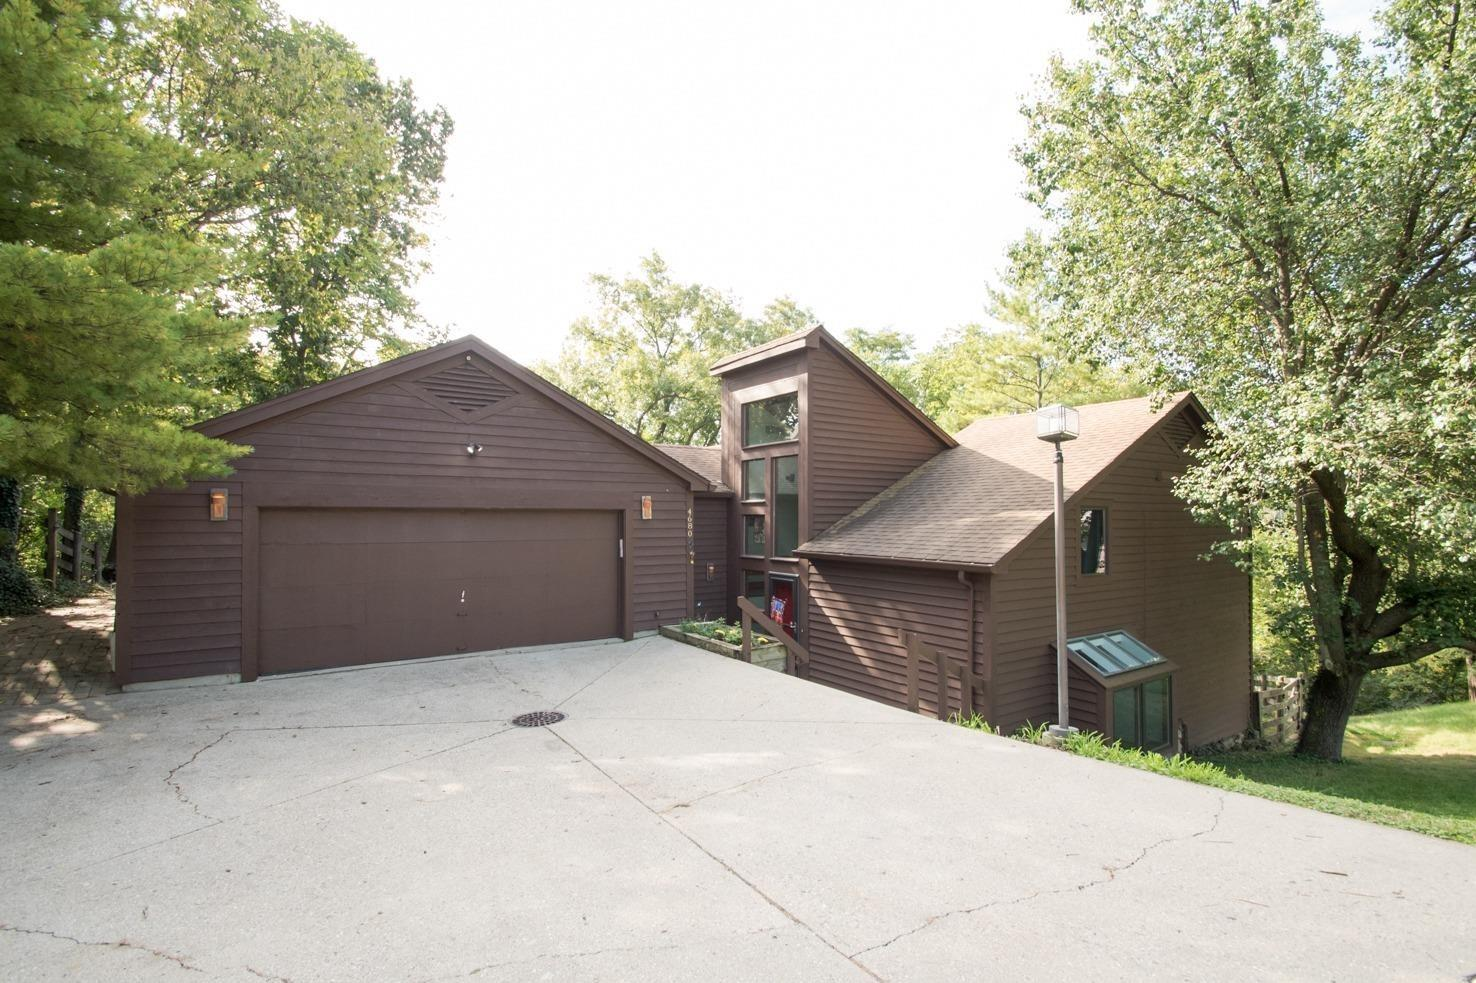 4680 Mission Ln Mt. Airy, OH